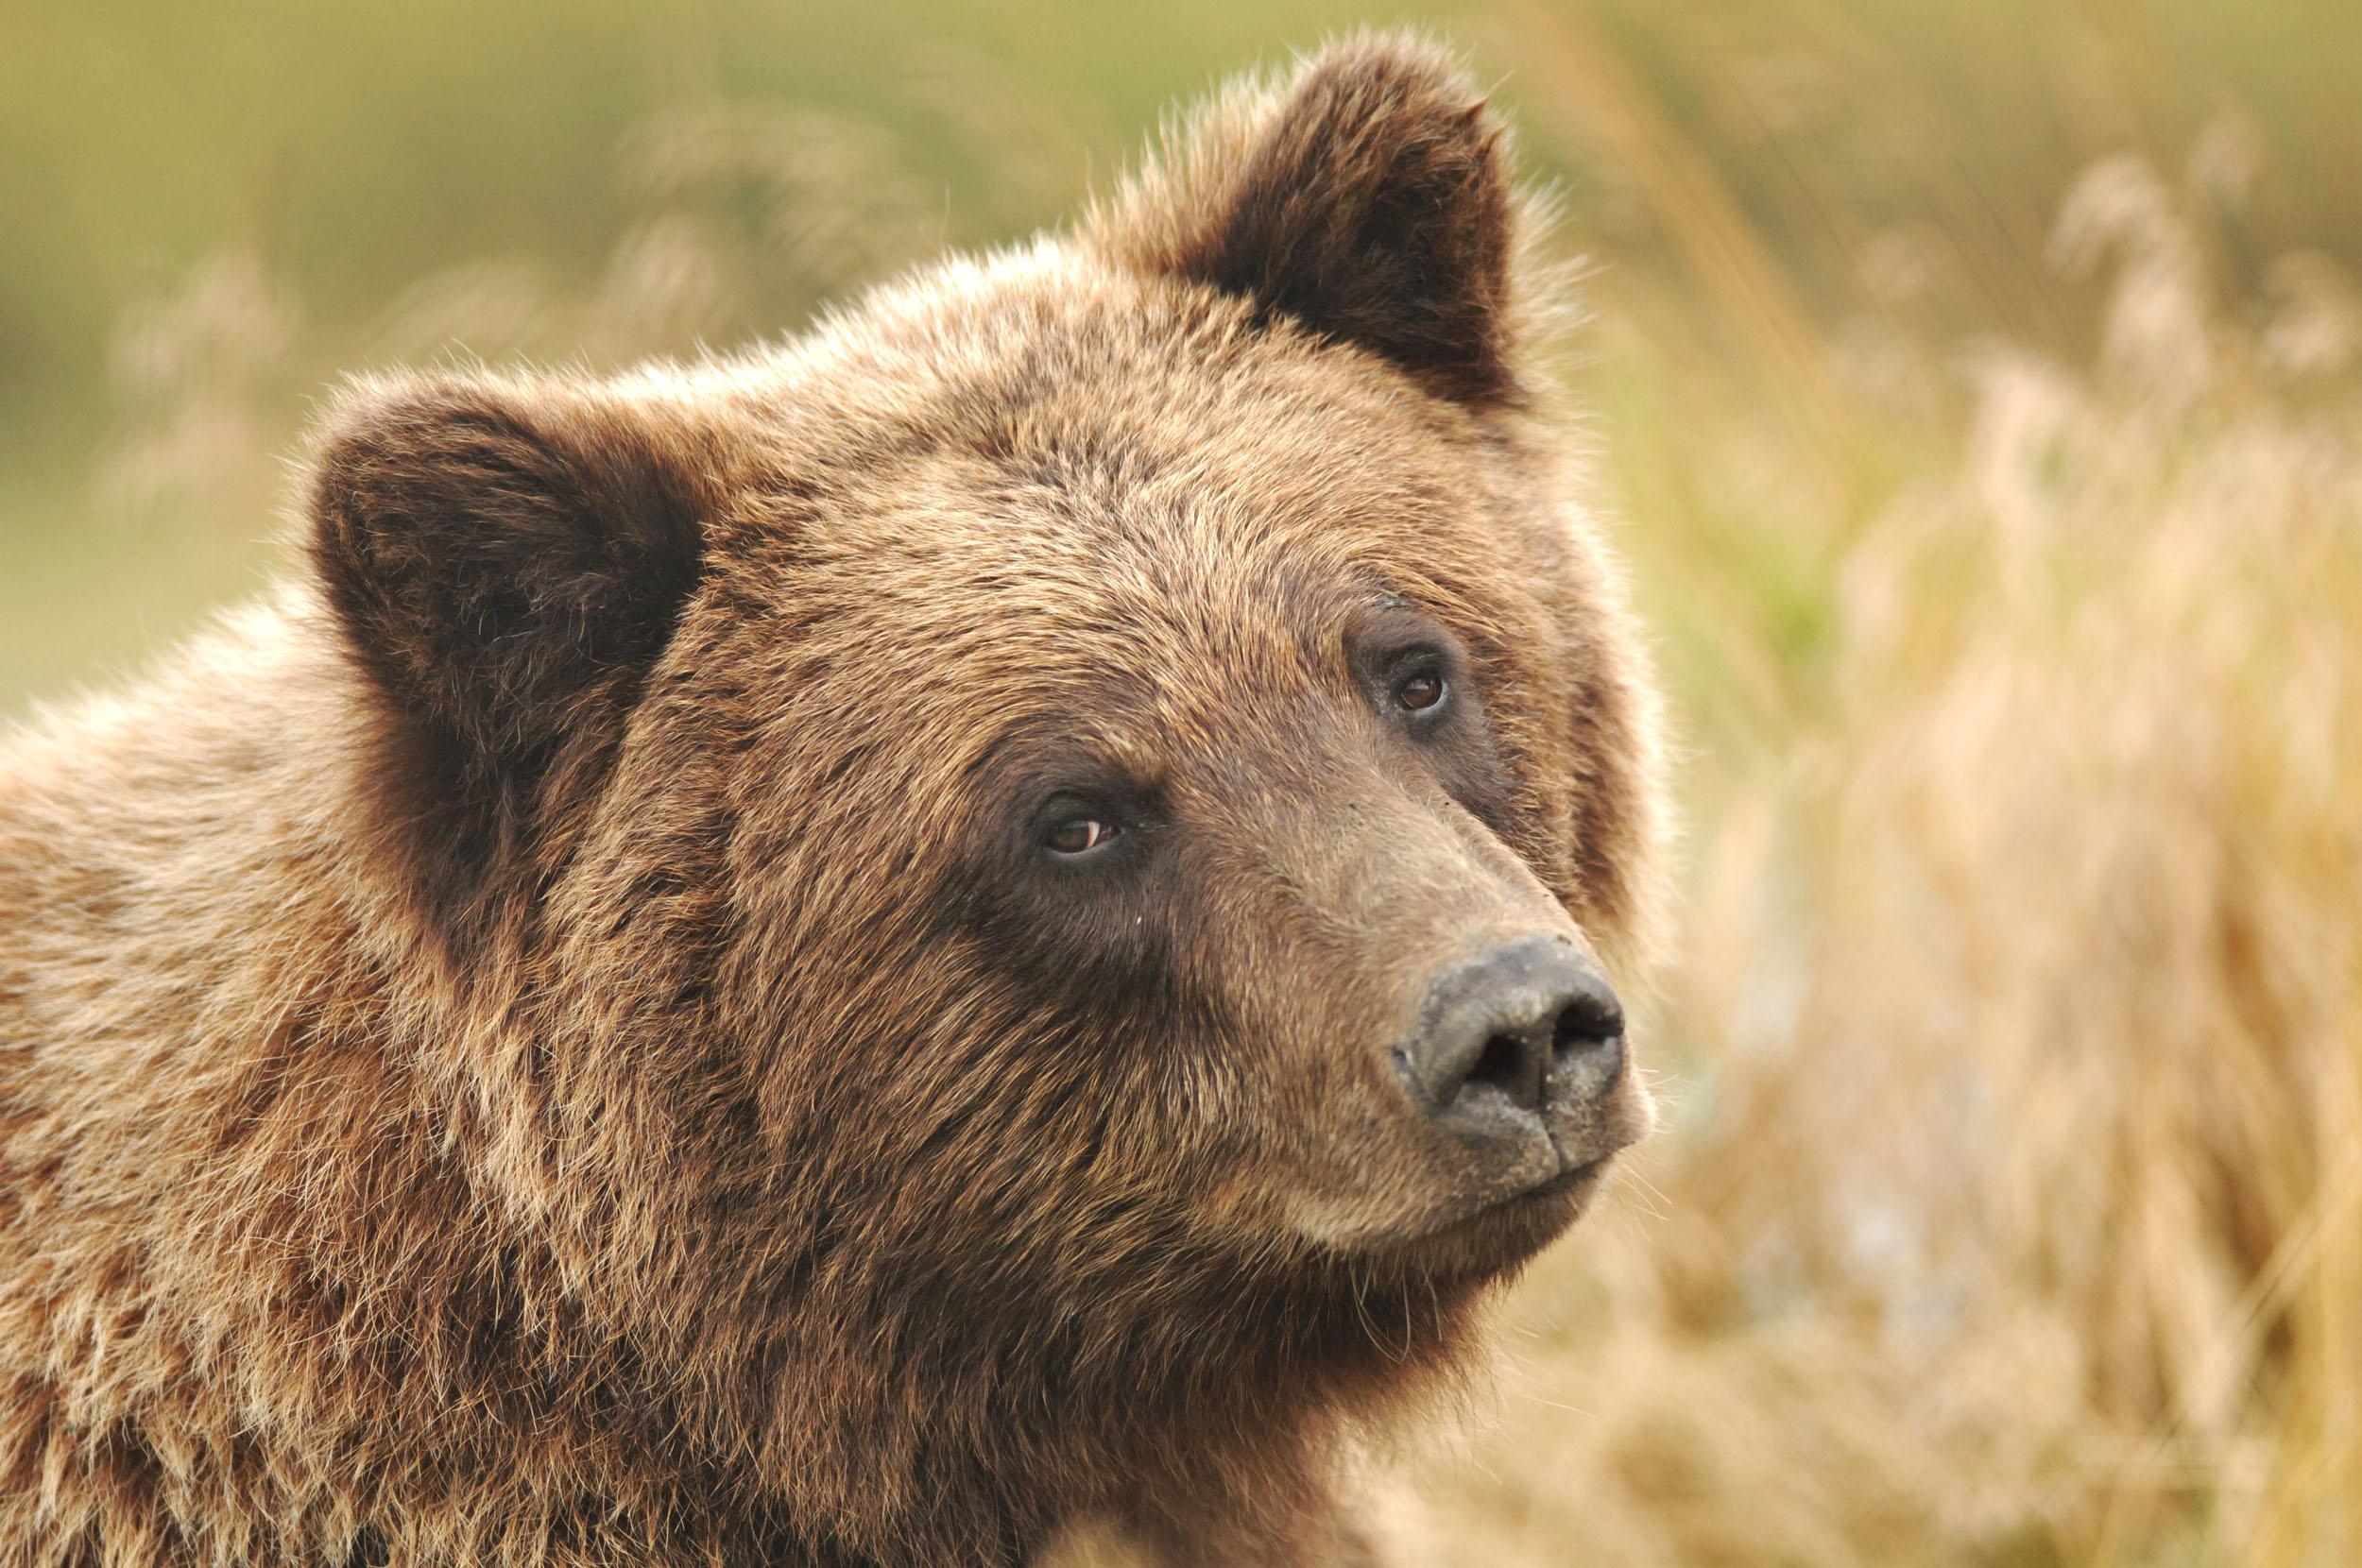 A grizzly bear is pictured in its enclosure at the Alaska Wildlife Conservation Center in Portage, Alaska on Aug. 22, 2005.